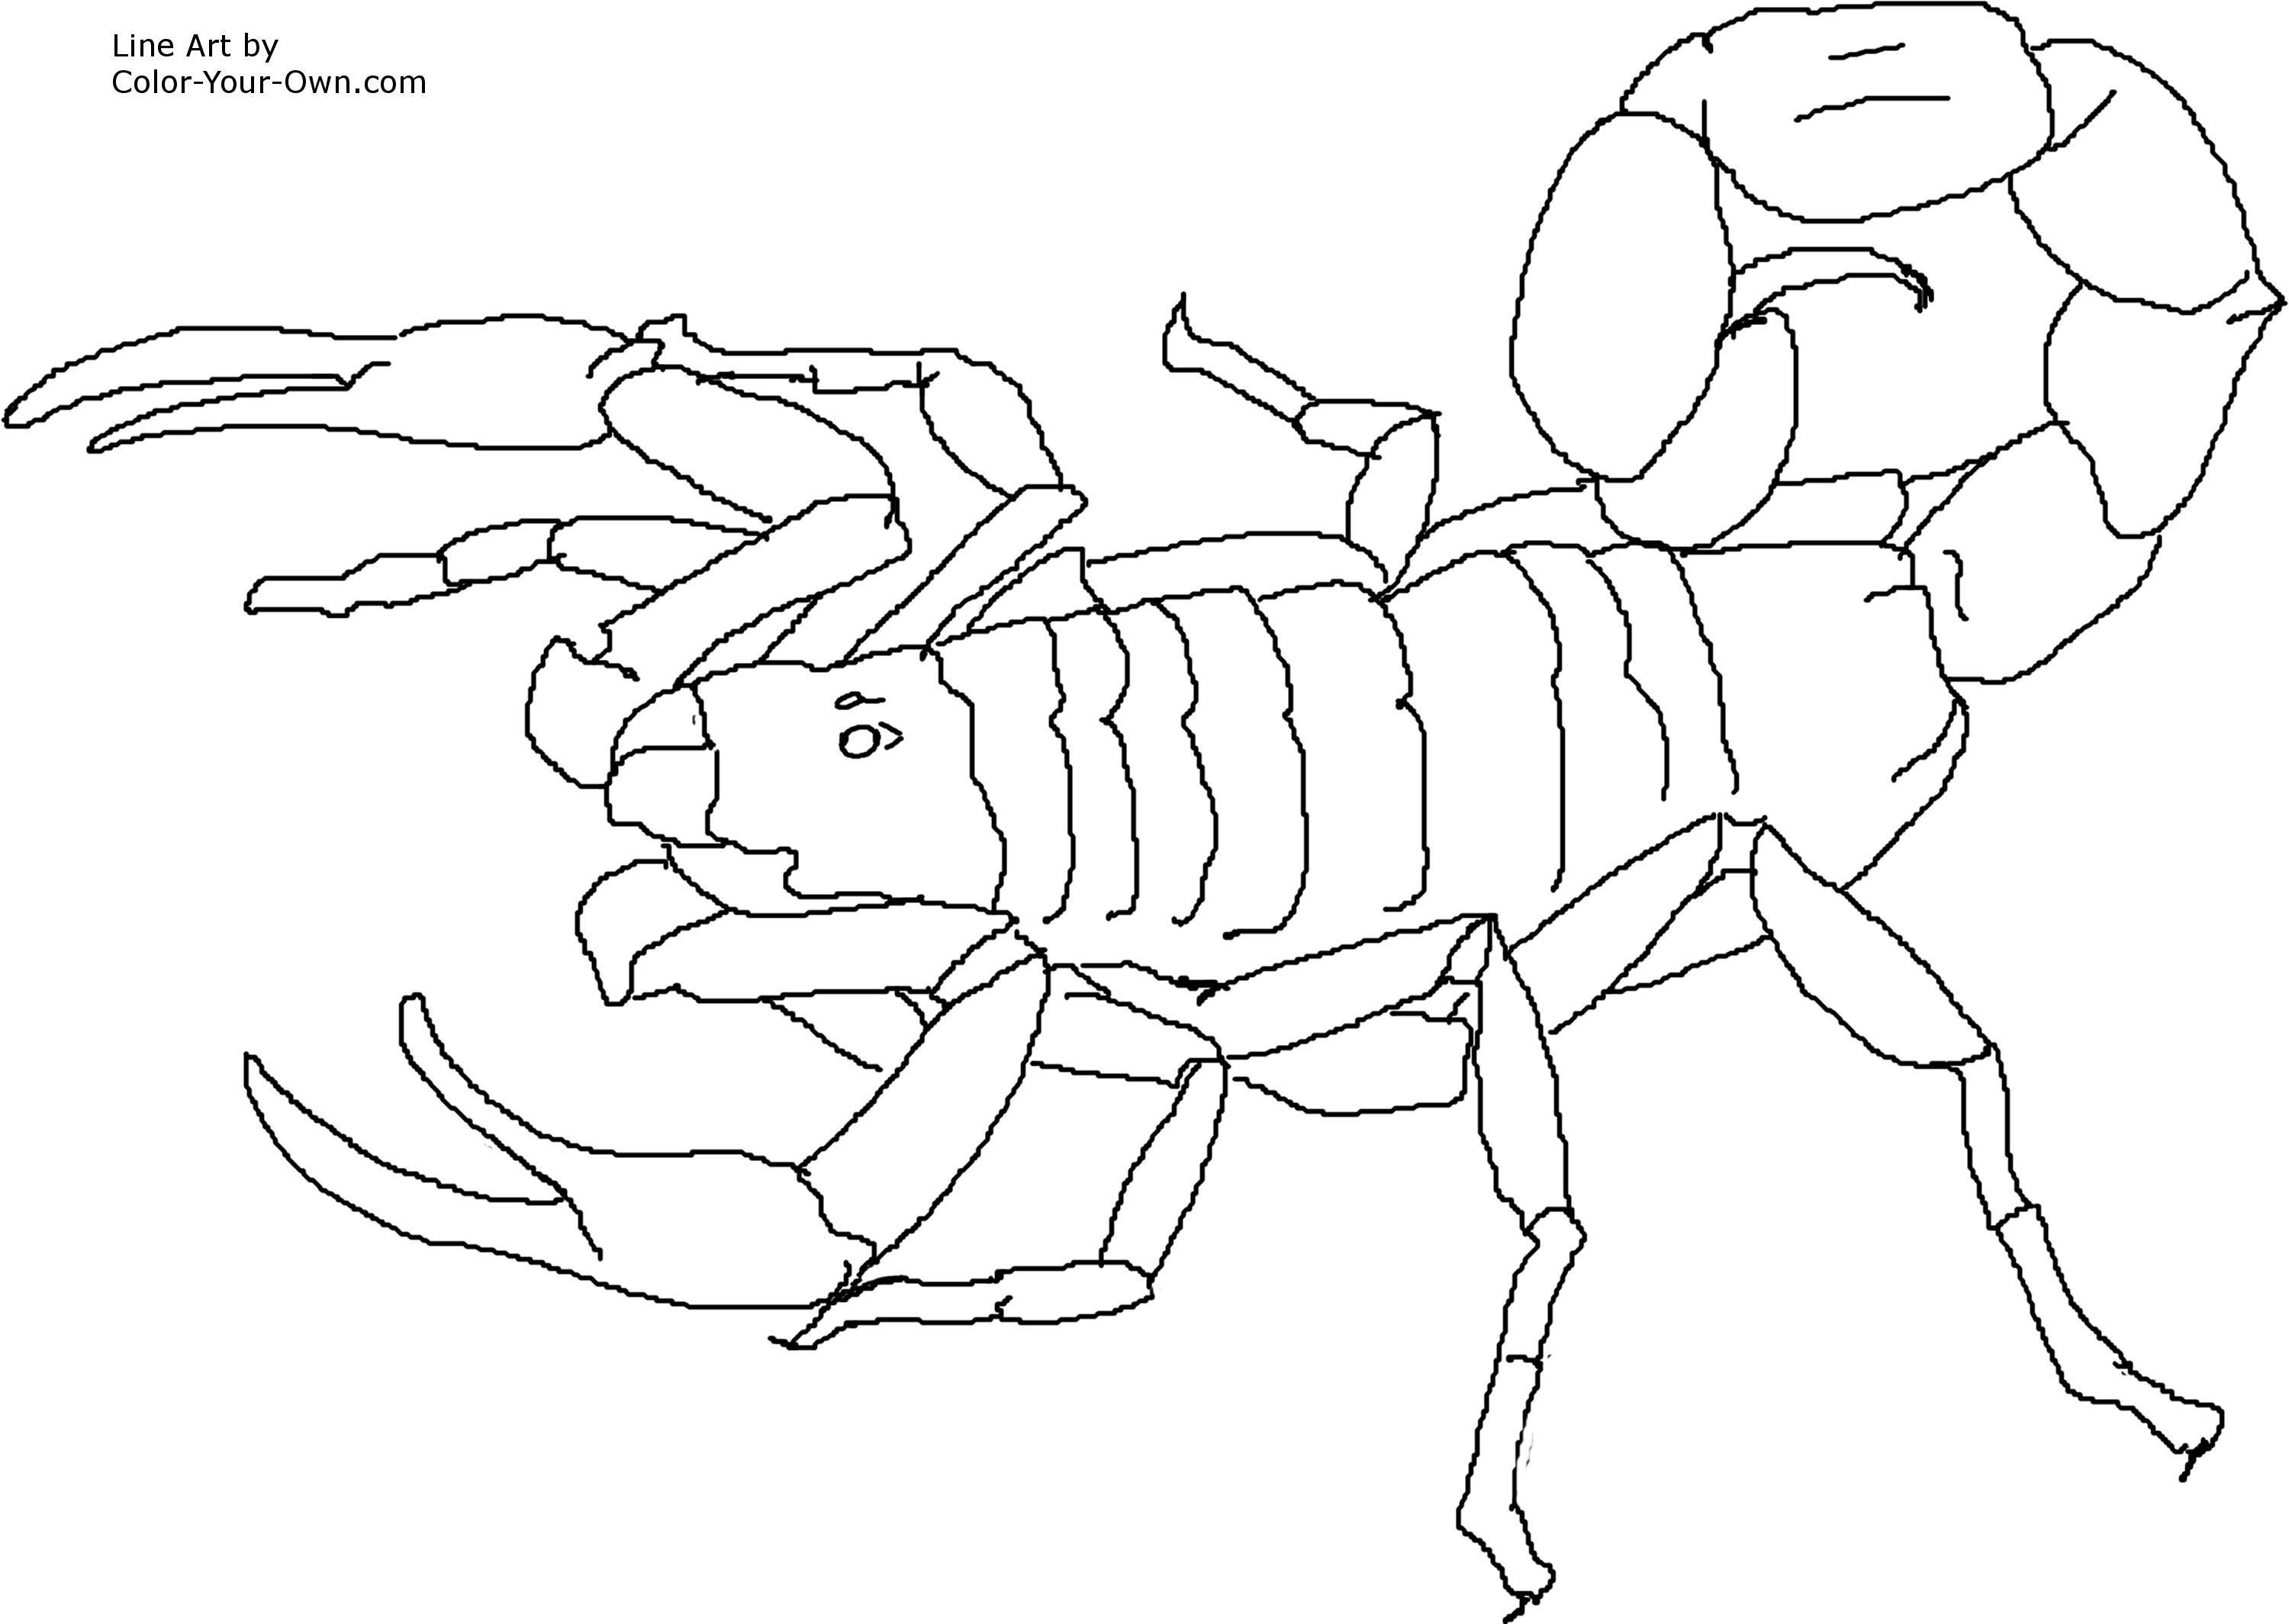 scorpion coloring pages - invertebrate scorpion side